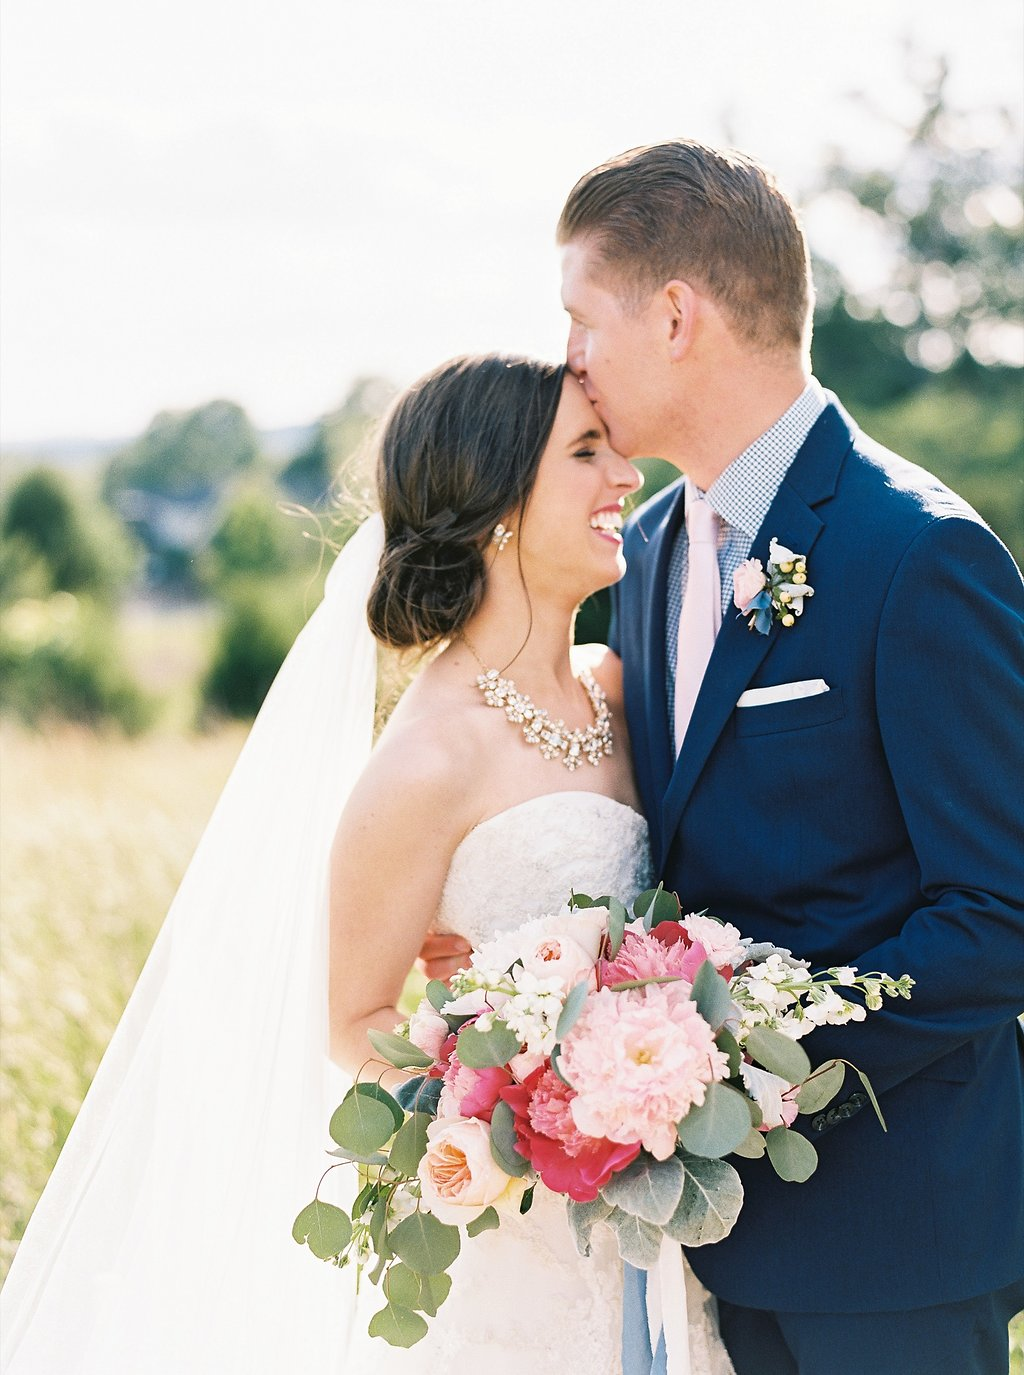 Sweet Newlywed Photos | Blush and Navy Wedding with Fuchsia, French Blue and Gold Accents | Simply Jessica Marie's Southern Wedding at Gettysvue | Photo by Perry Vaile Photography